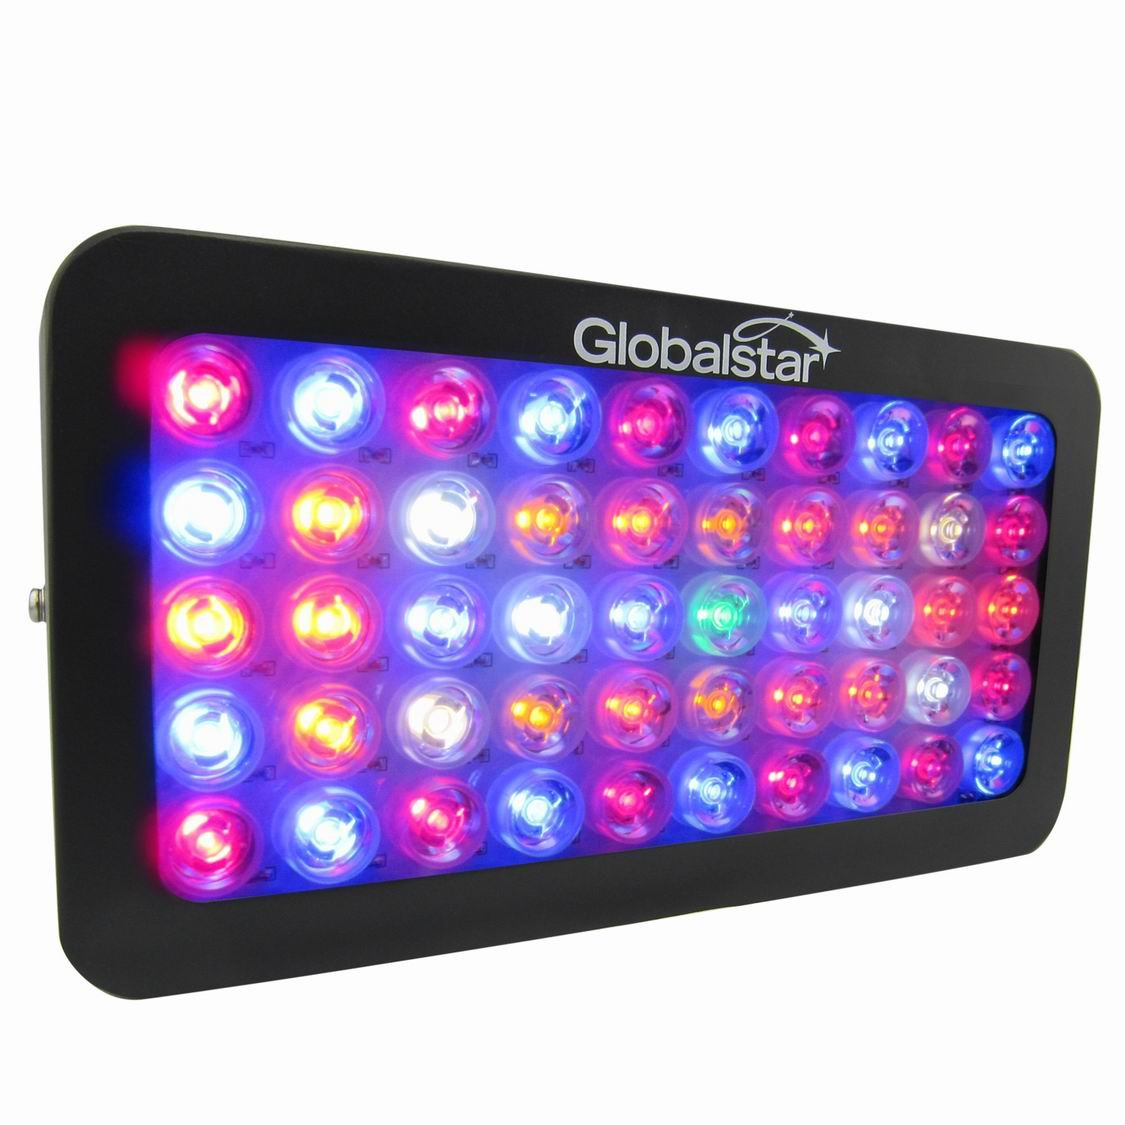 Global Star G02-50x6w Plus Horticulture Full Spectrum 300w Black LED Grow Light for Indoor Plant Growing